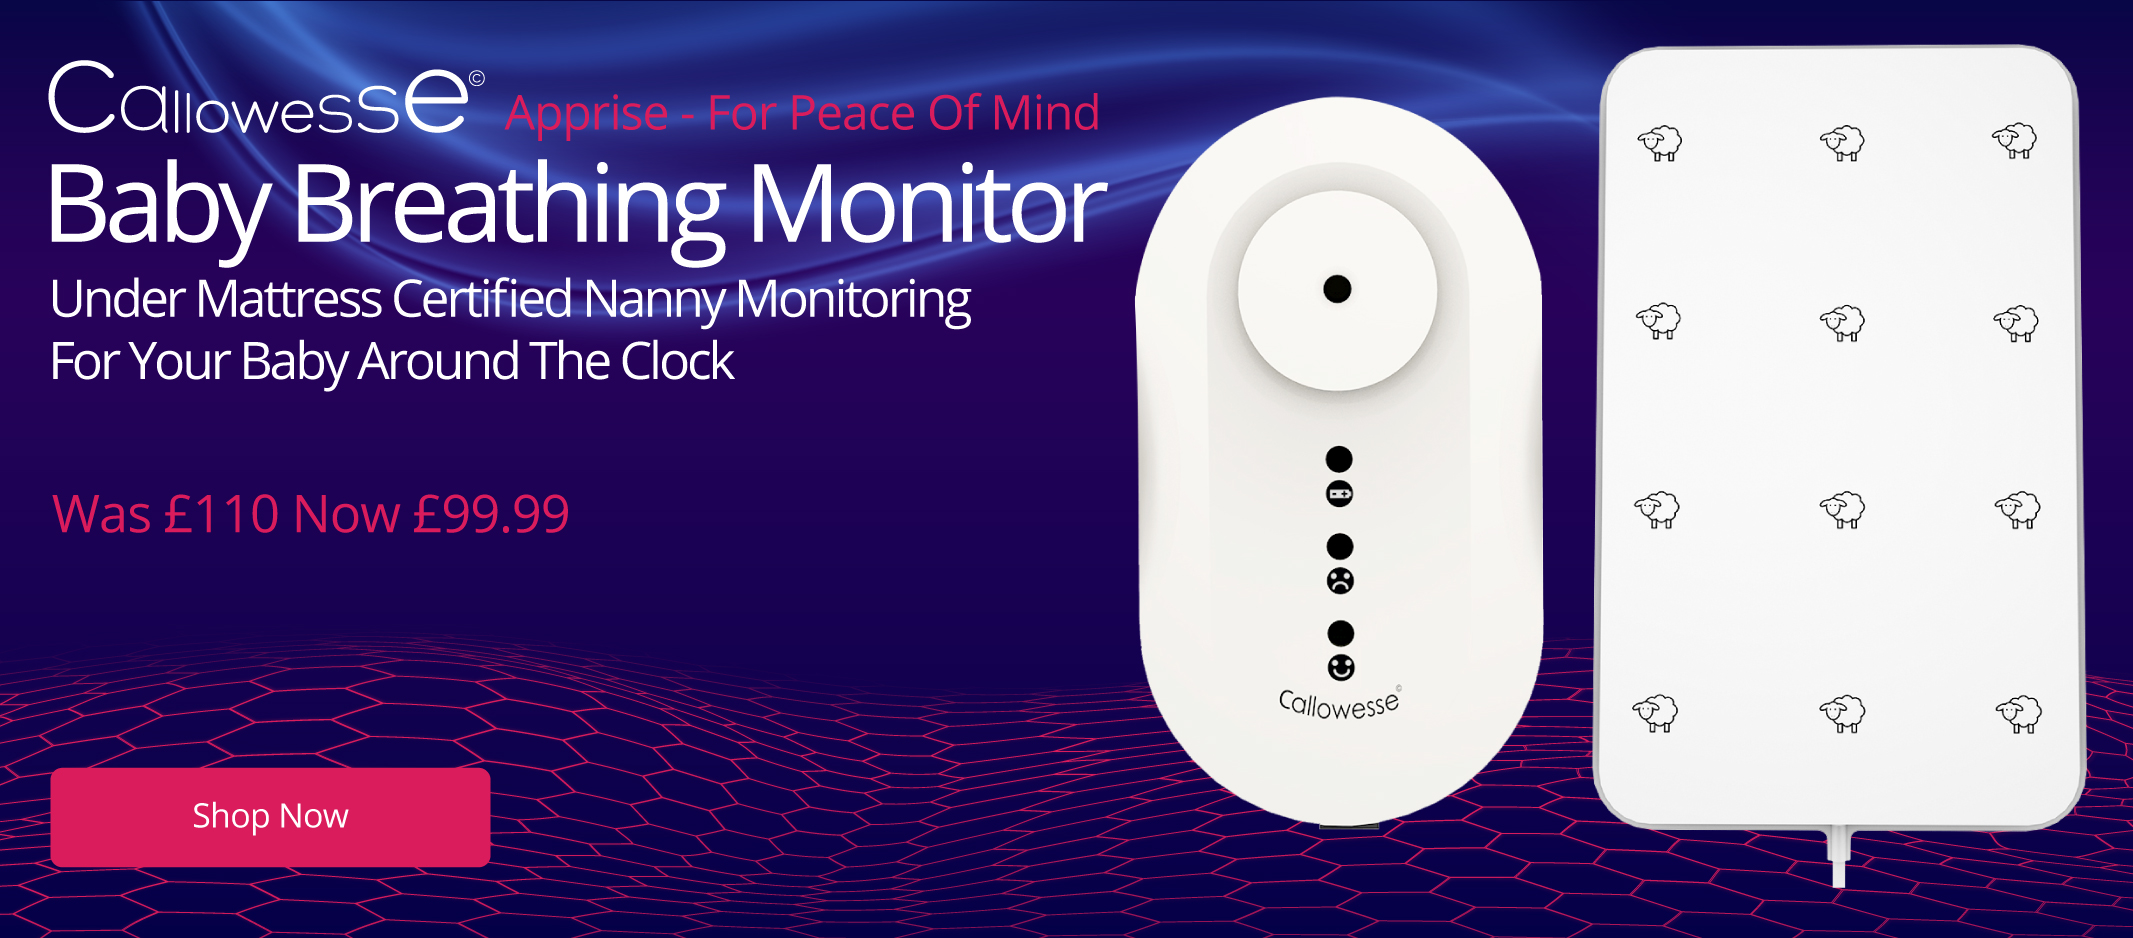 Callowesse Apprise Breathing Monitor